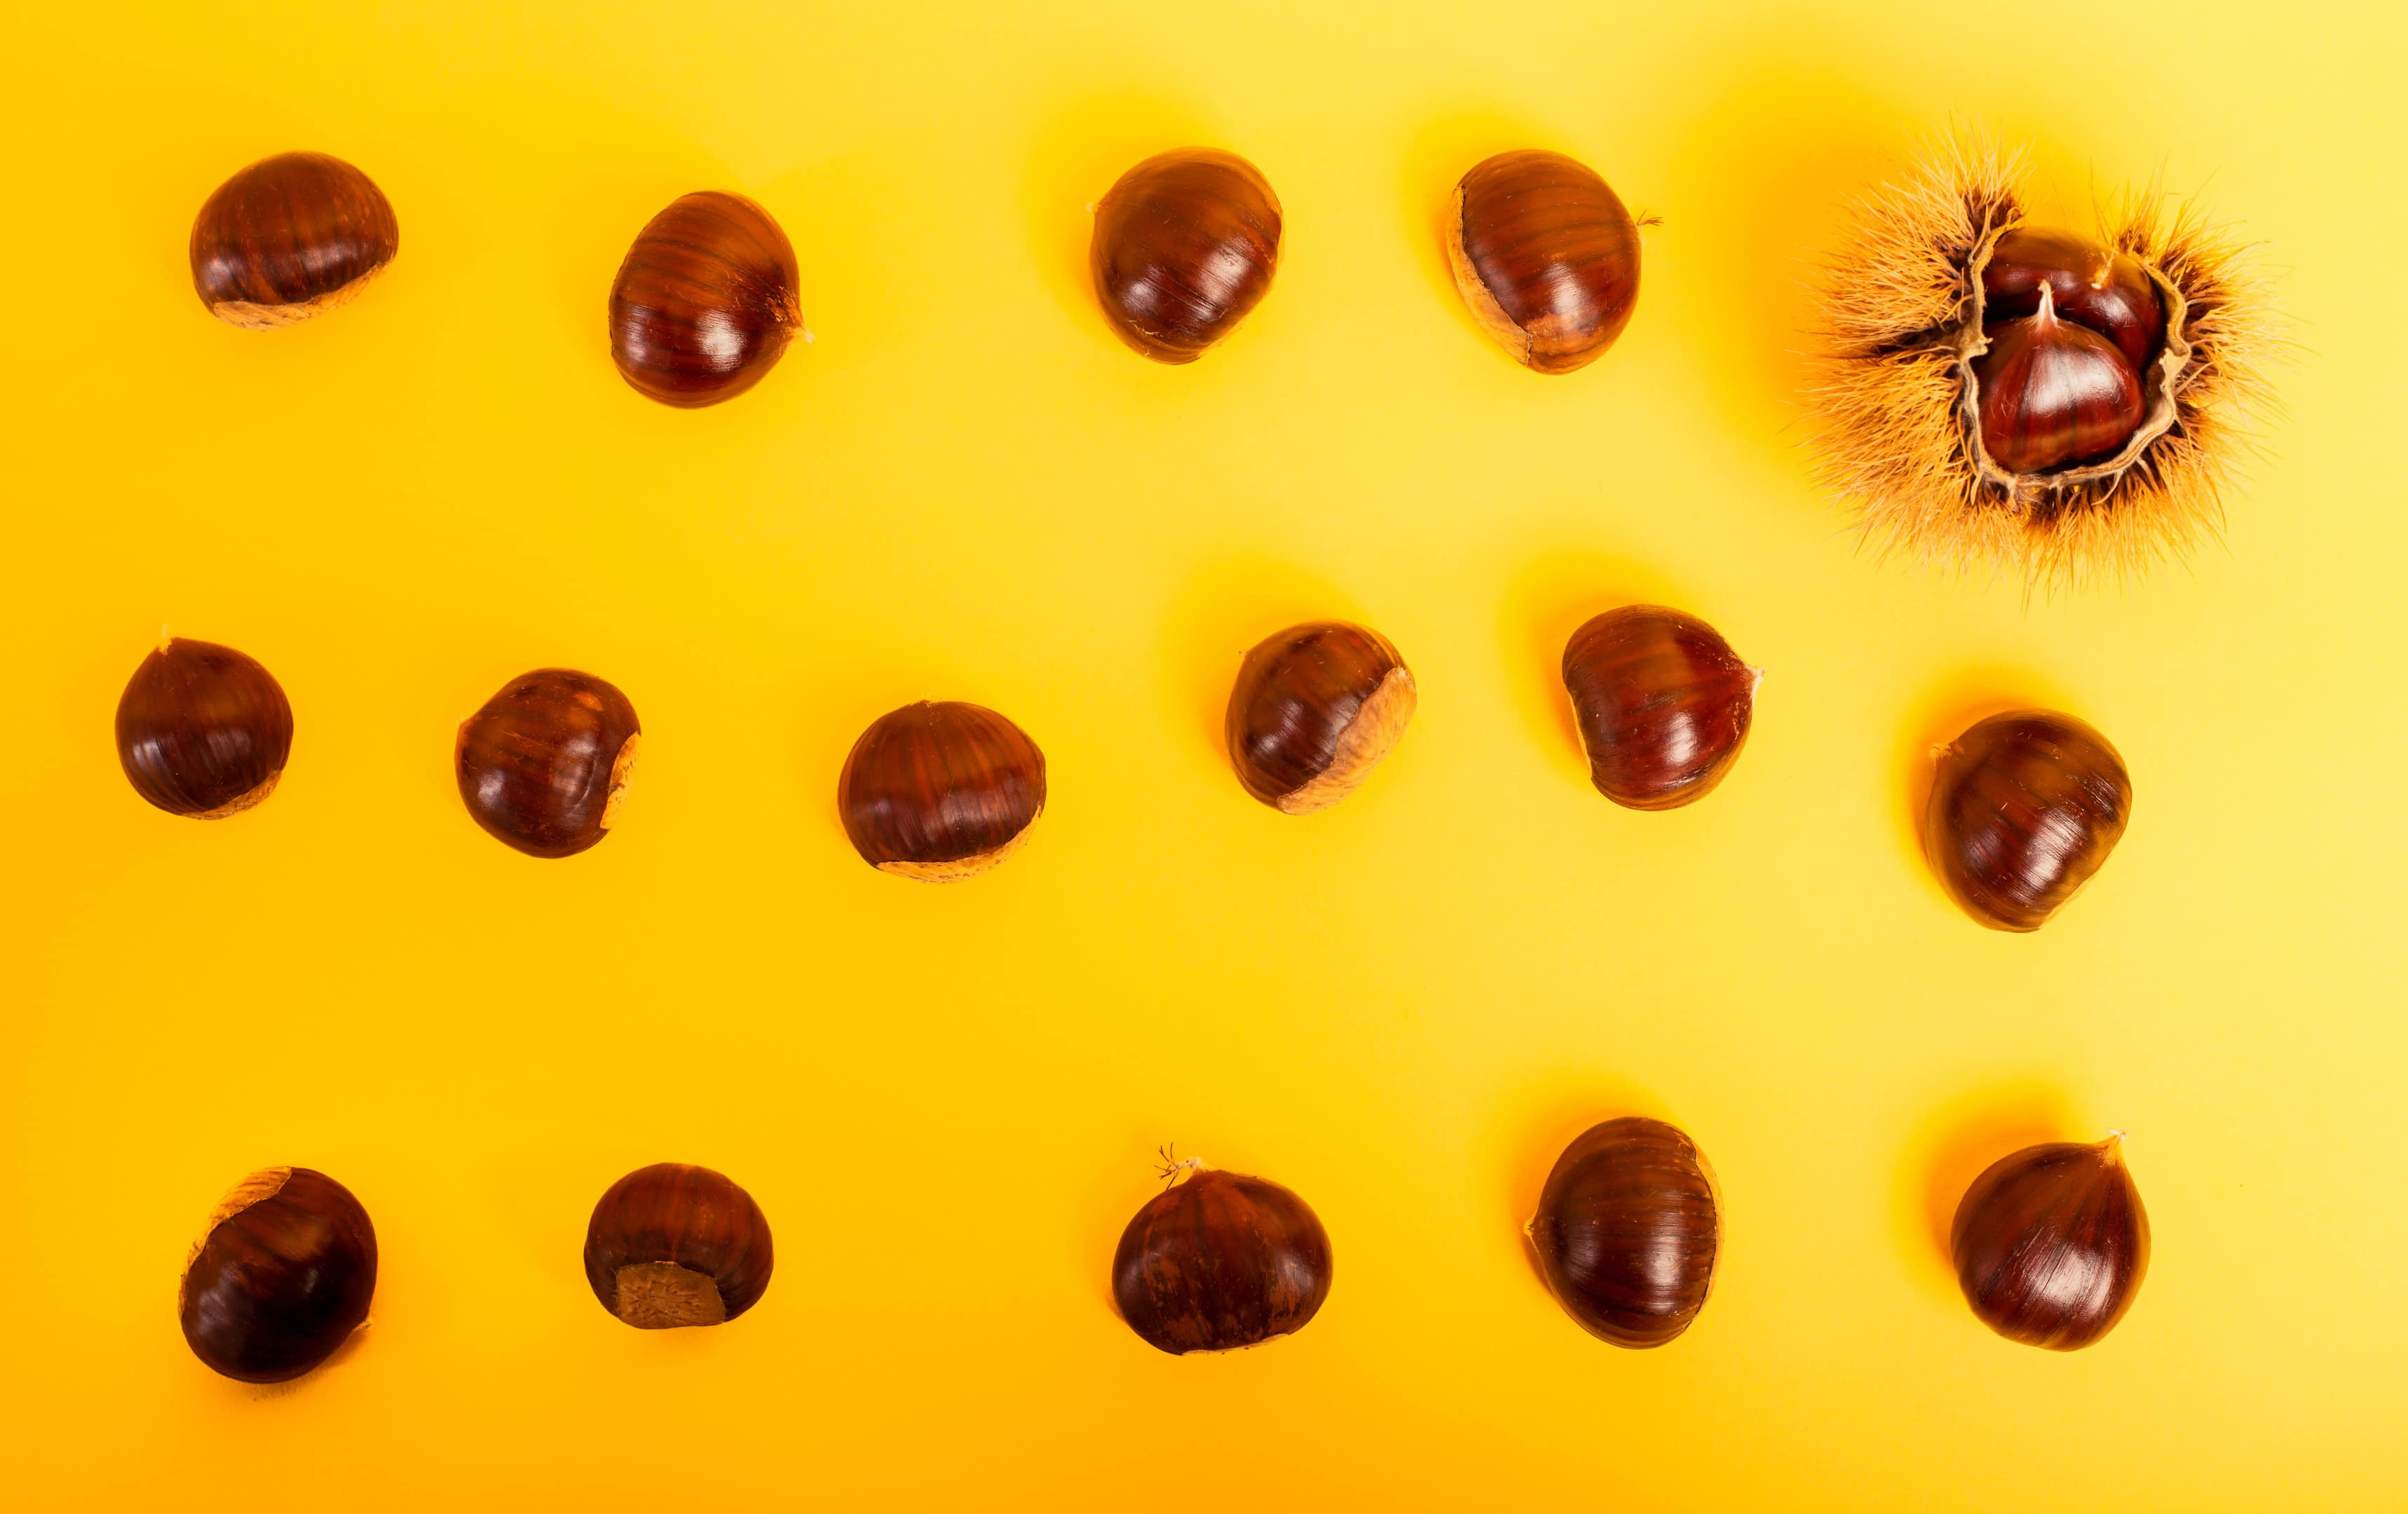 Chestnuts assortment on yellow background